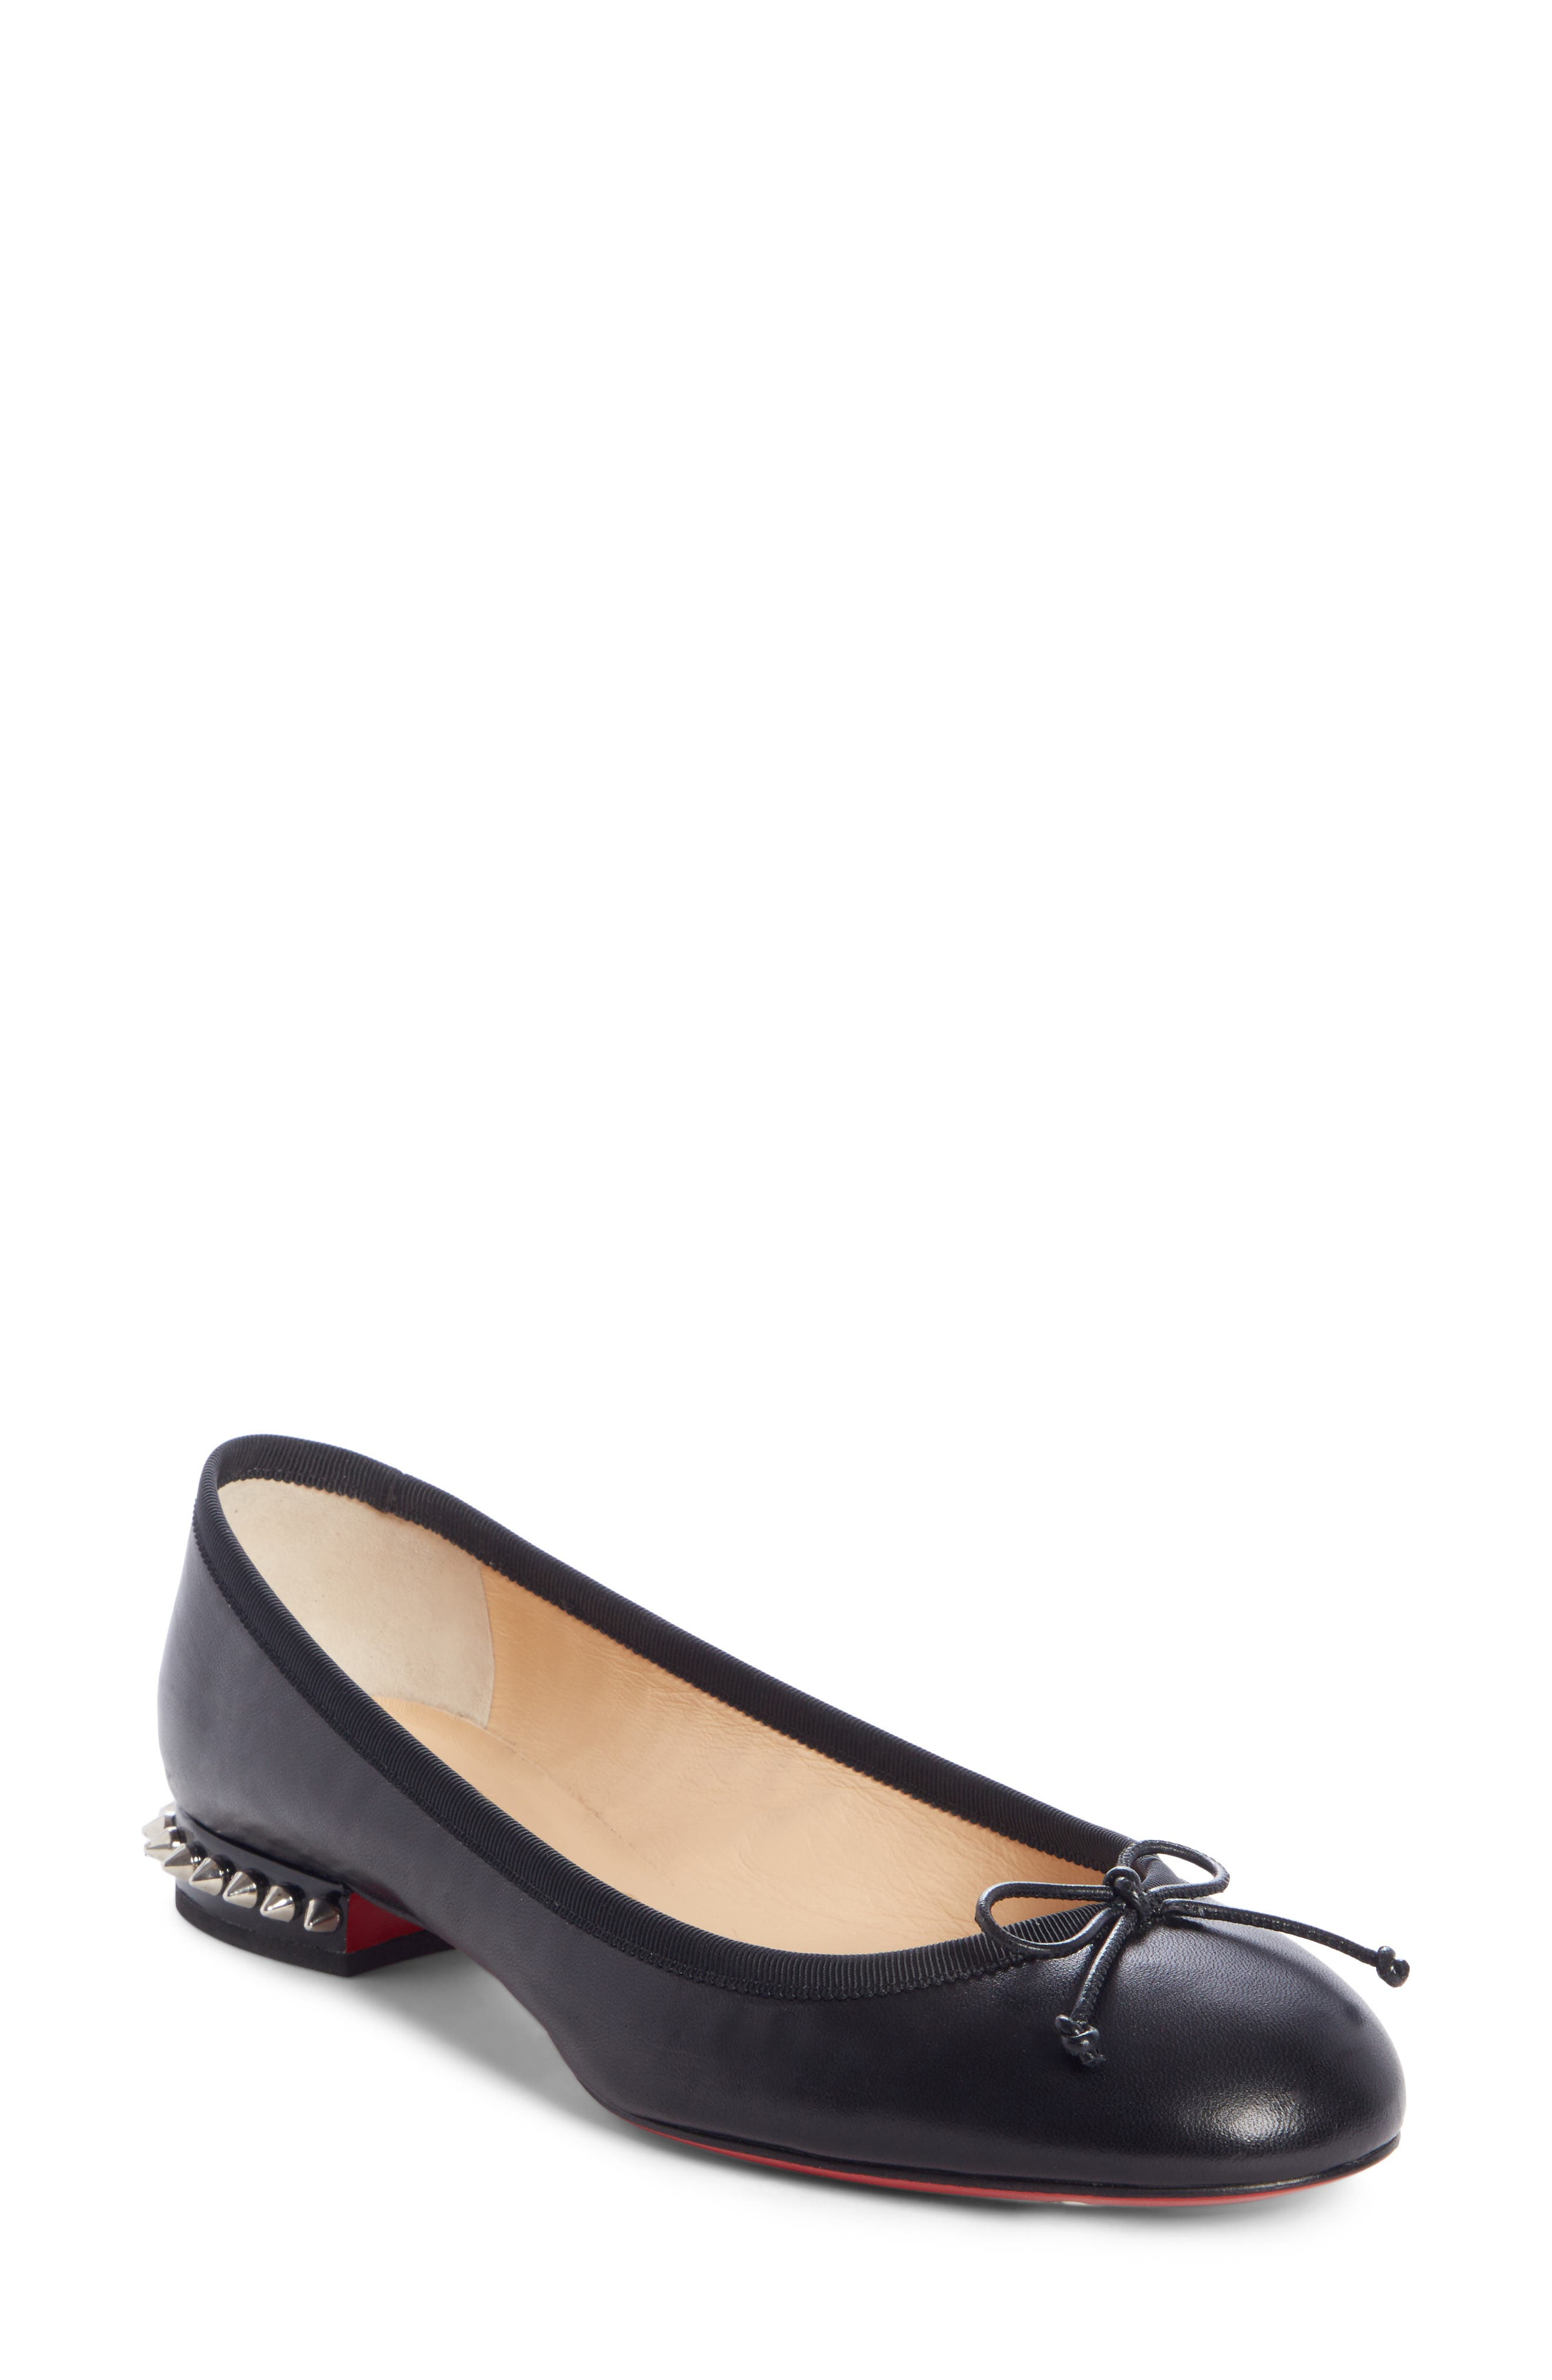 CHRISTIAN LOUBOUTIN La Massine Spike Flat, Main, color, BLACK